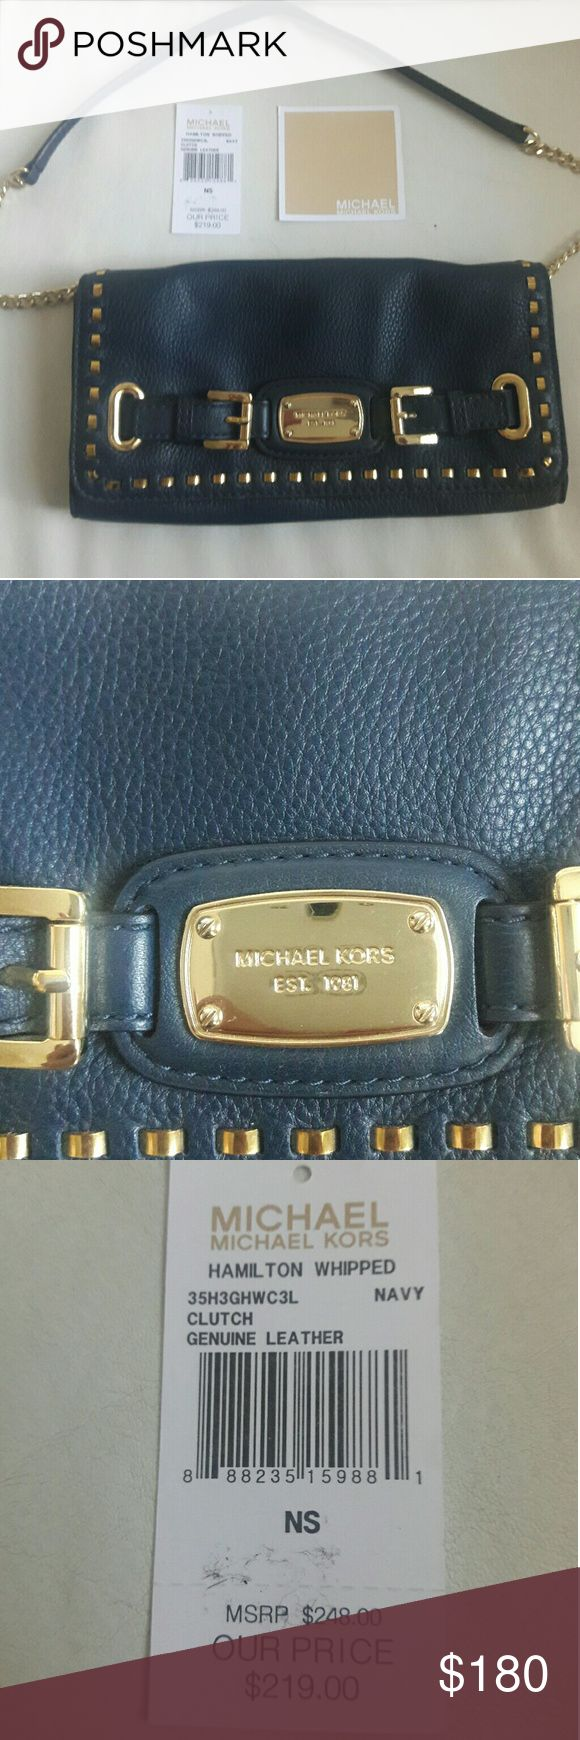 Michael Kors Leather clutch Michael Kors Hamilton whipped clutch navy. I only used it twice after I got it as a Christmas gift. Still has tags with it. Basically brand new Michael Kors Bags Clutches & Wristlets